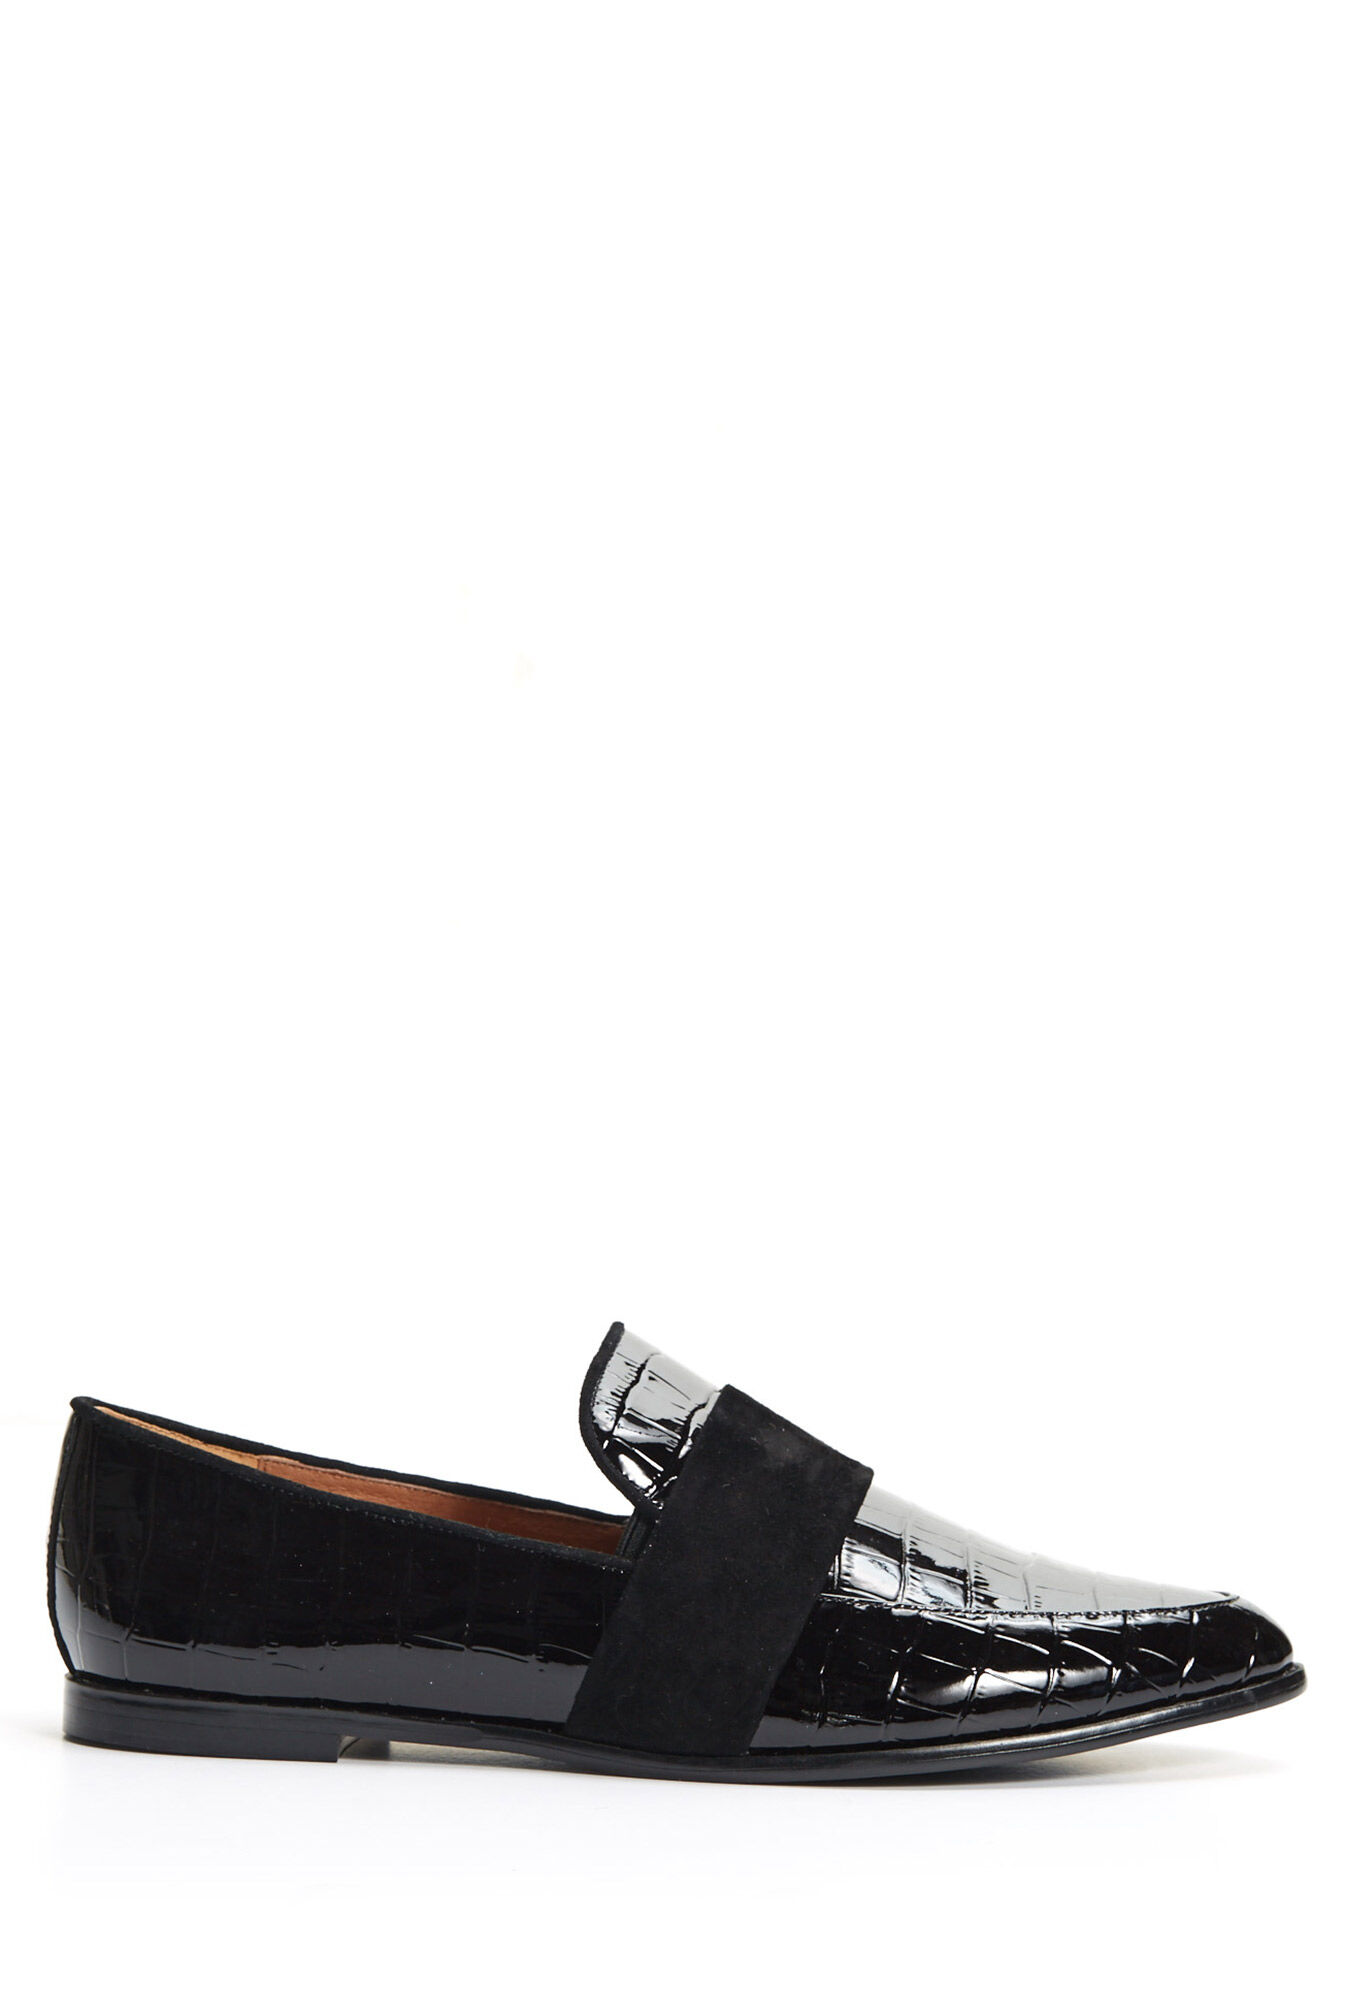 saba ashley loaferblack36